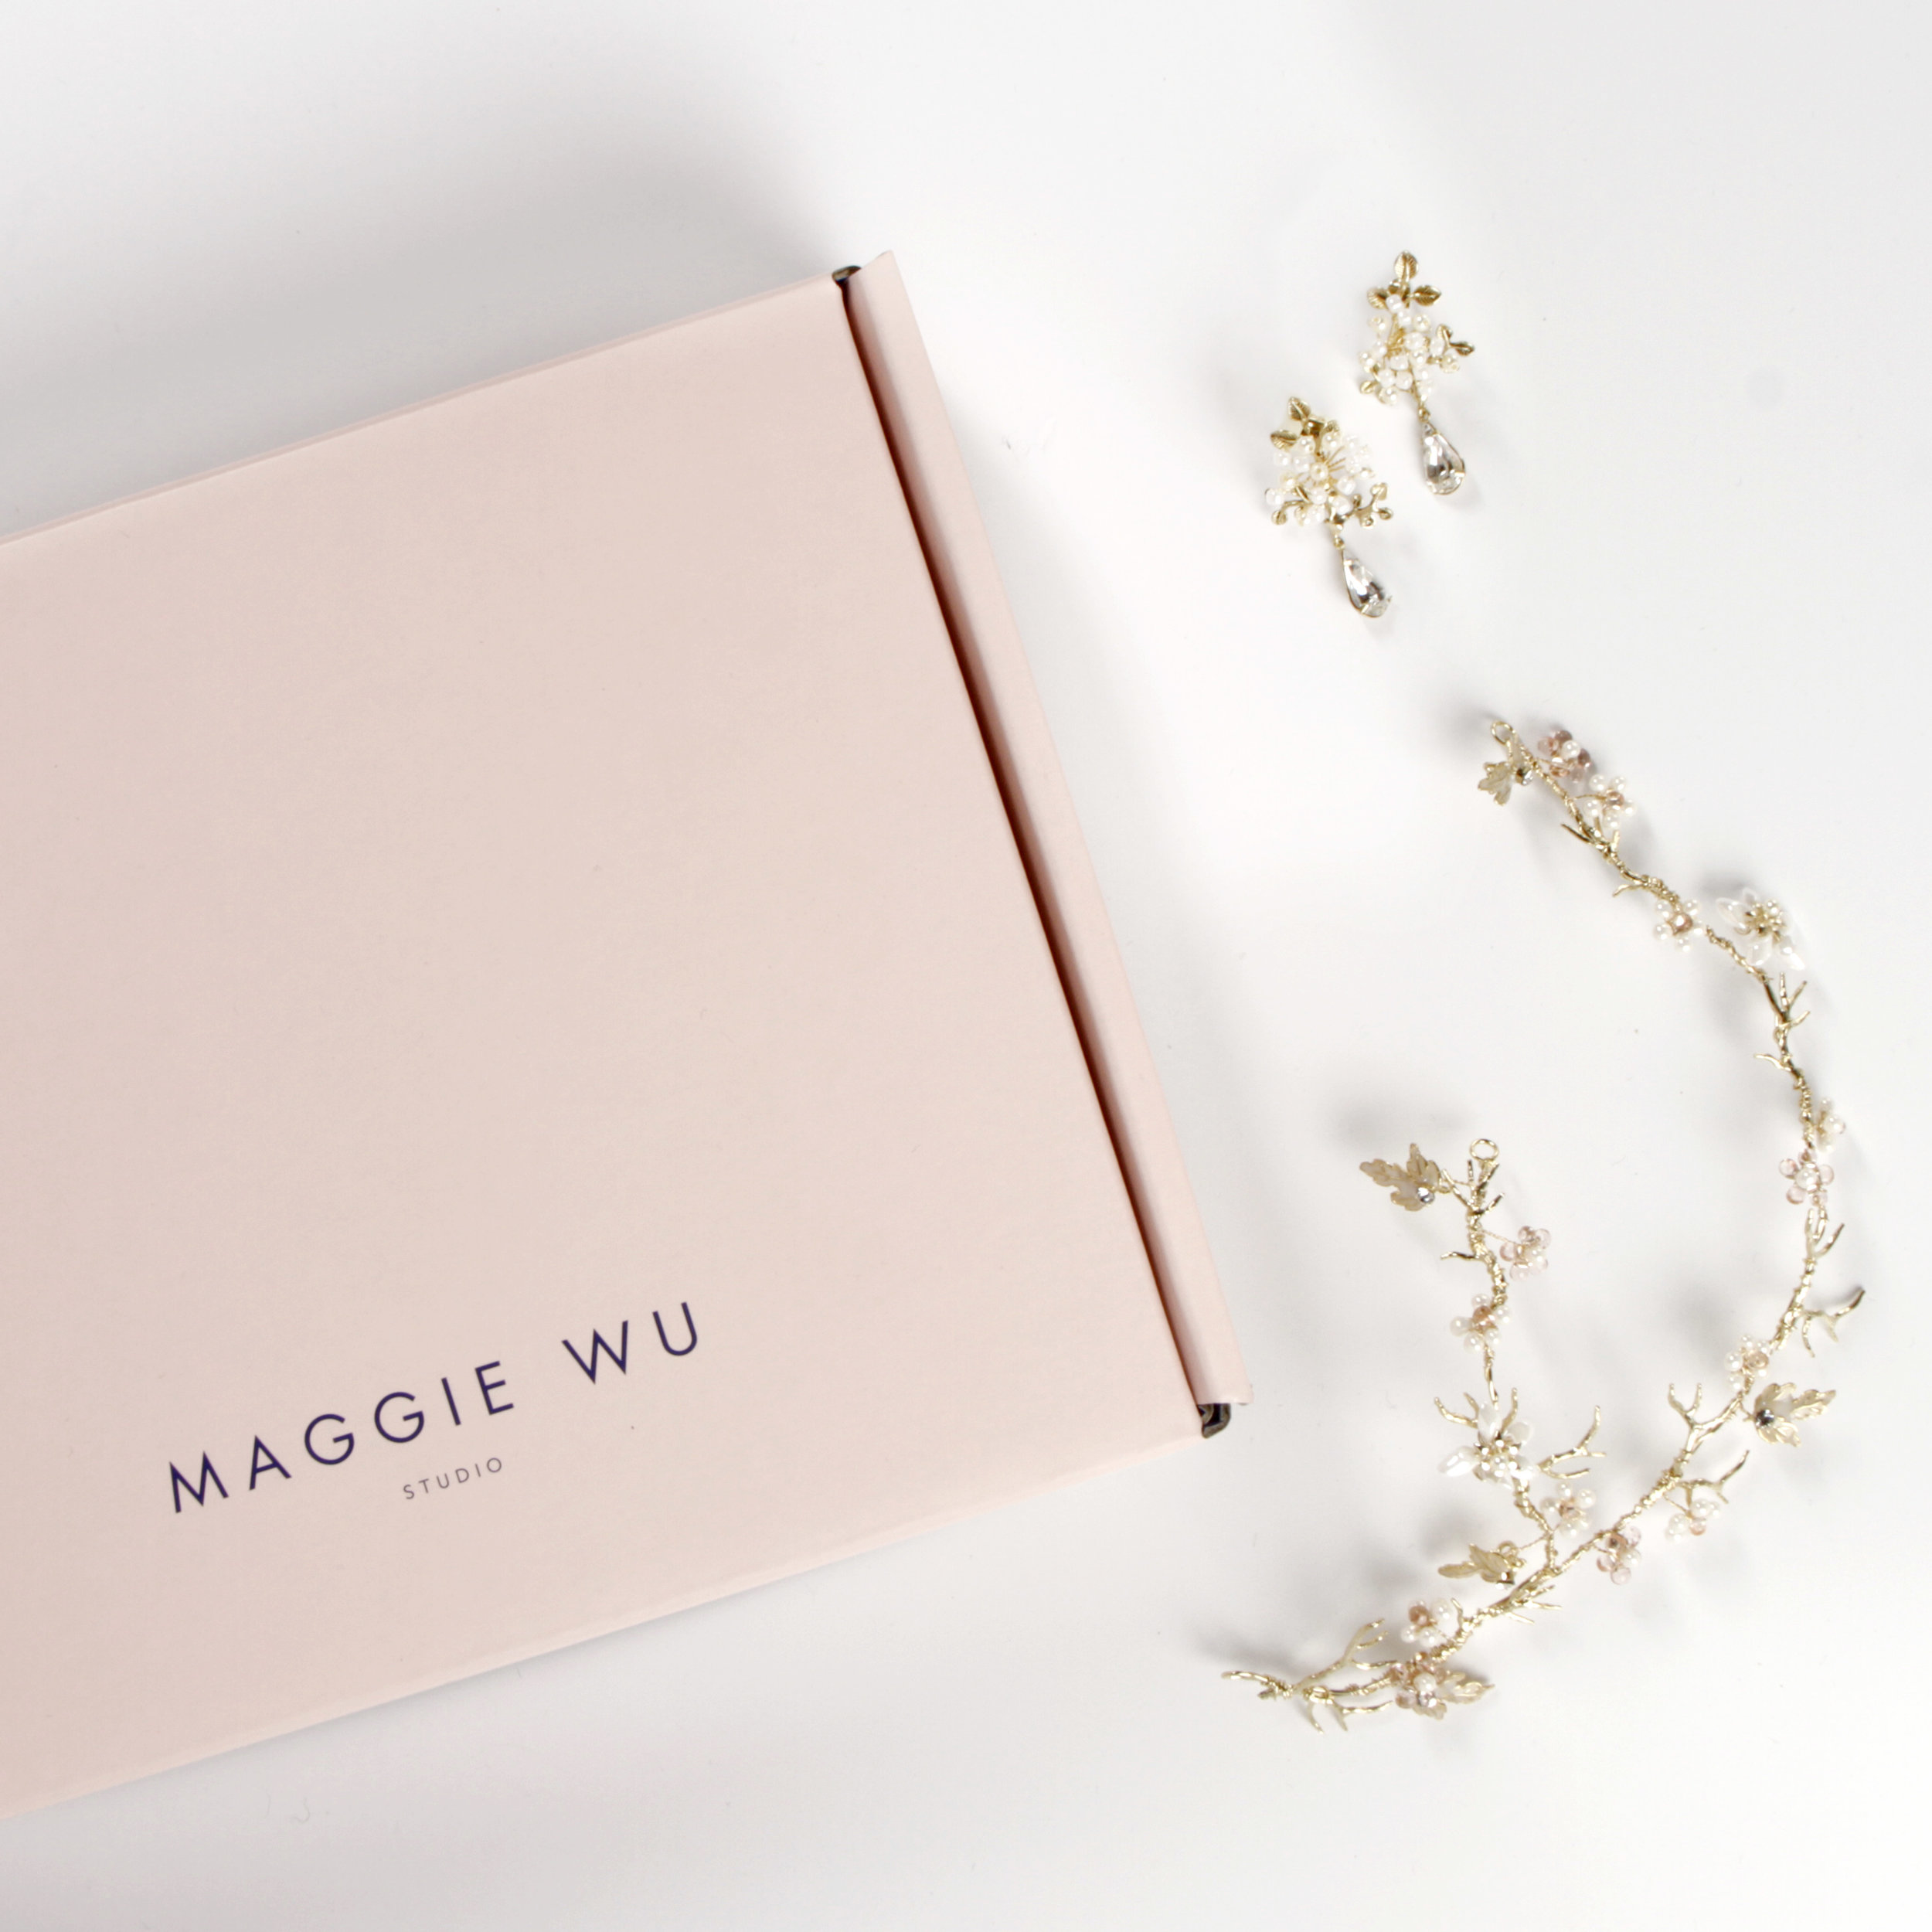 The perfect pairing for the modern bride, Maggie Wu Studio's Perfect Bridal Accessories Set includes a  Aria Headpiece  and  Ria Earrings .